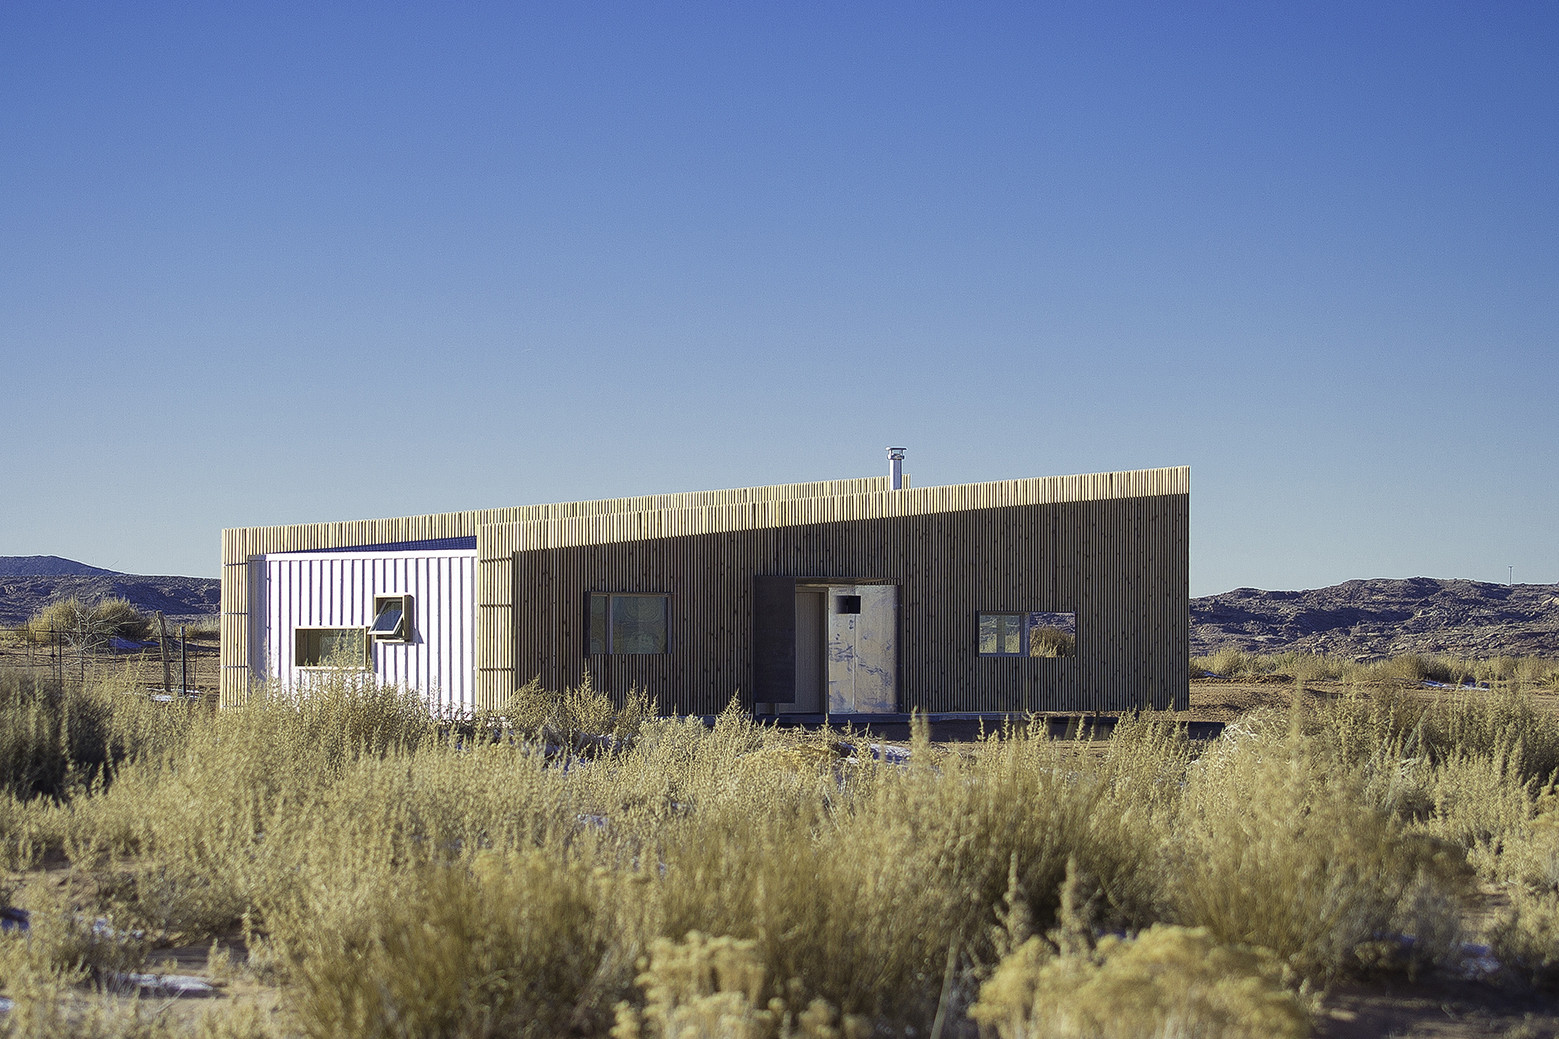 Hozho House / DesignBuildBLUFF + Colorado Building Workshop, Courtesy of DesignBuildBLUFF + University of Colorado Denver